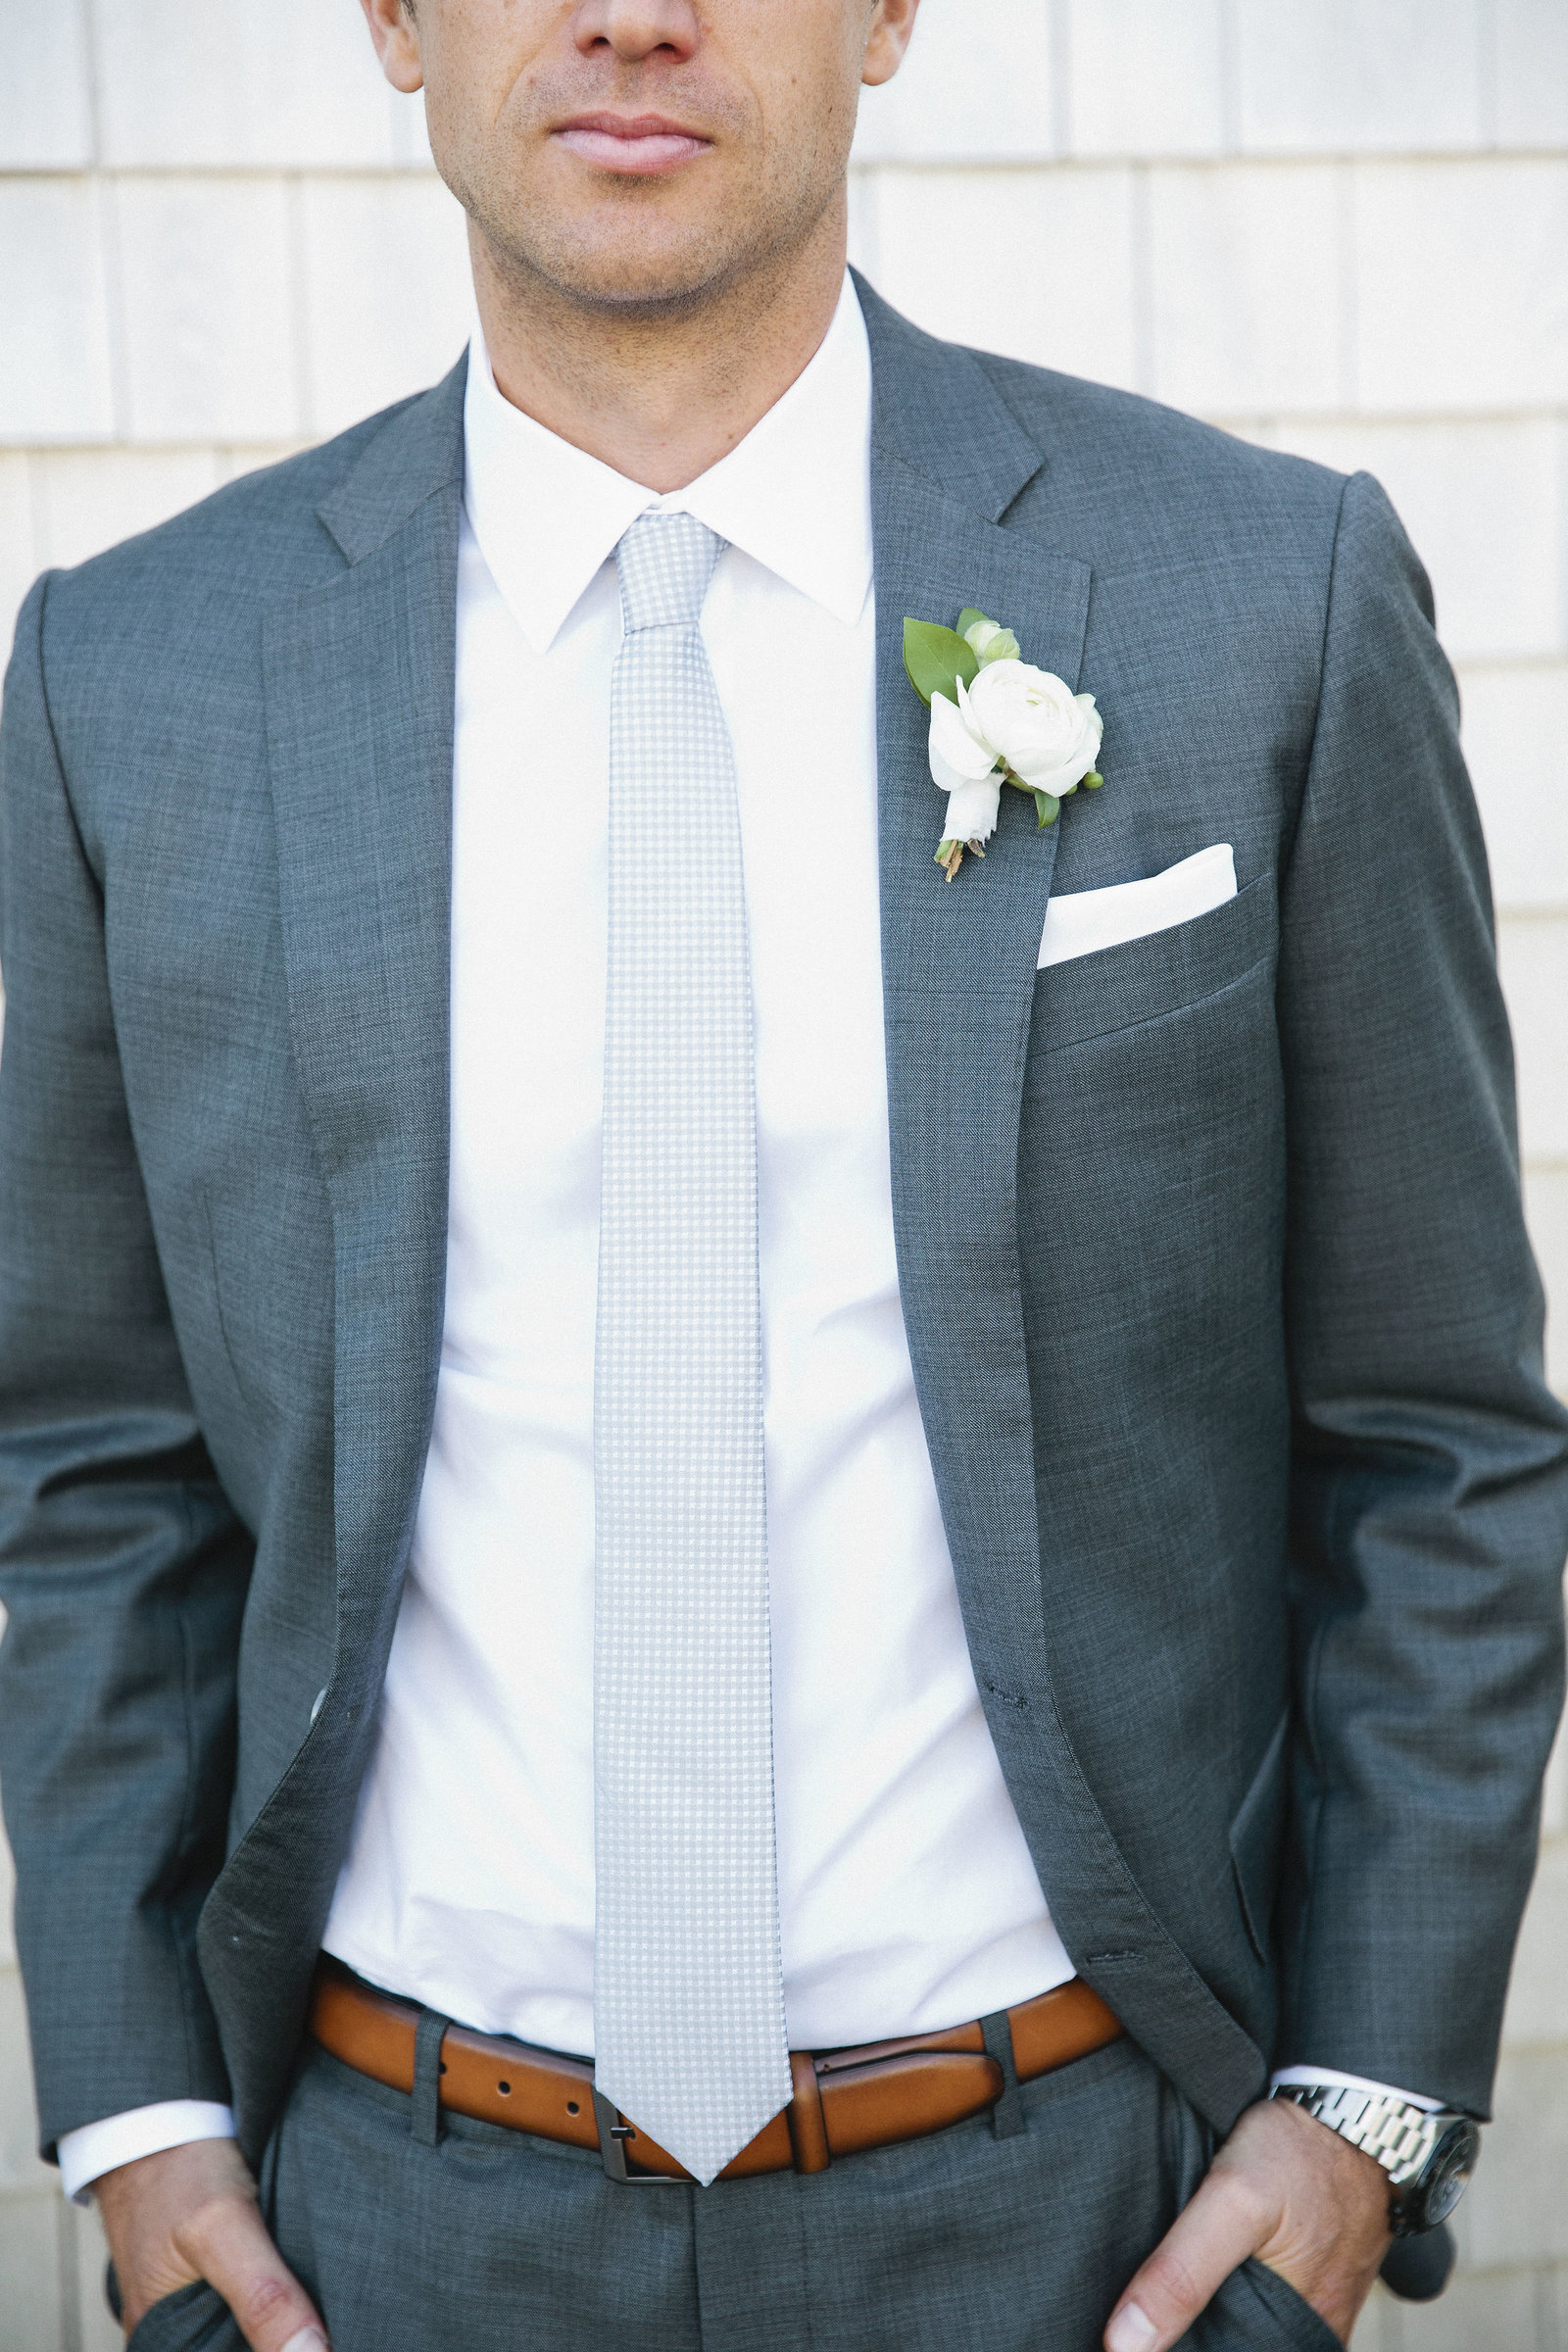 Gray custom suit and white boutonniere for groom on Cape Cod